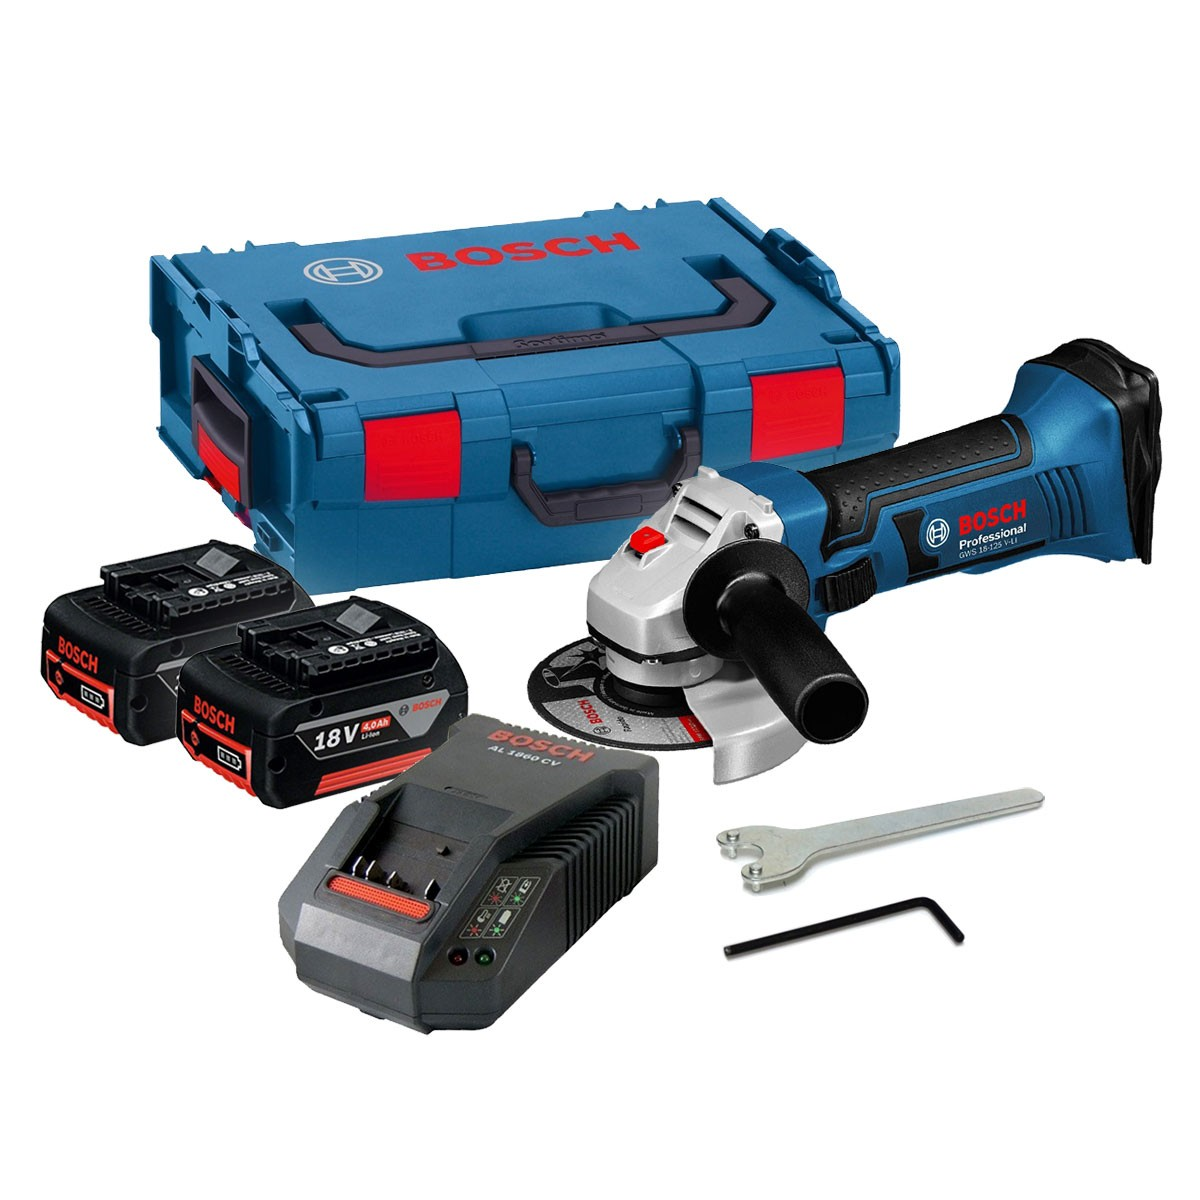 bosch gws 18 125 v li angle grinder inc 2x 4ah batt. Black Bedroom Furniture Sets. Home Design Ideas